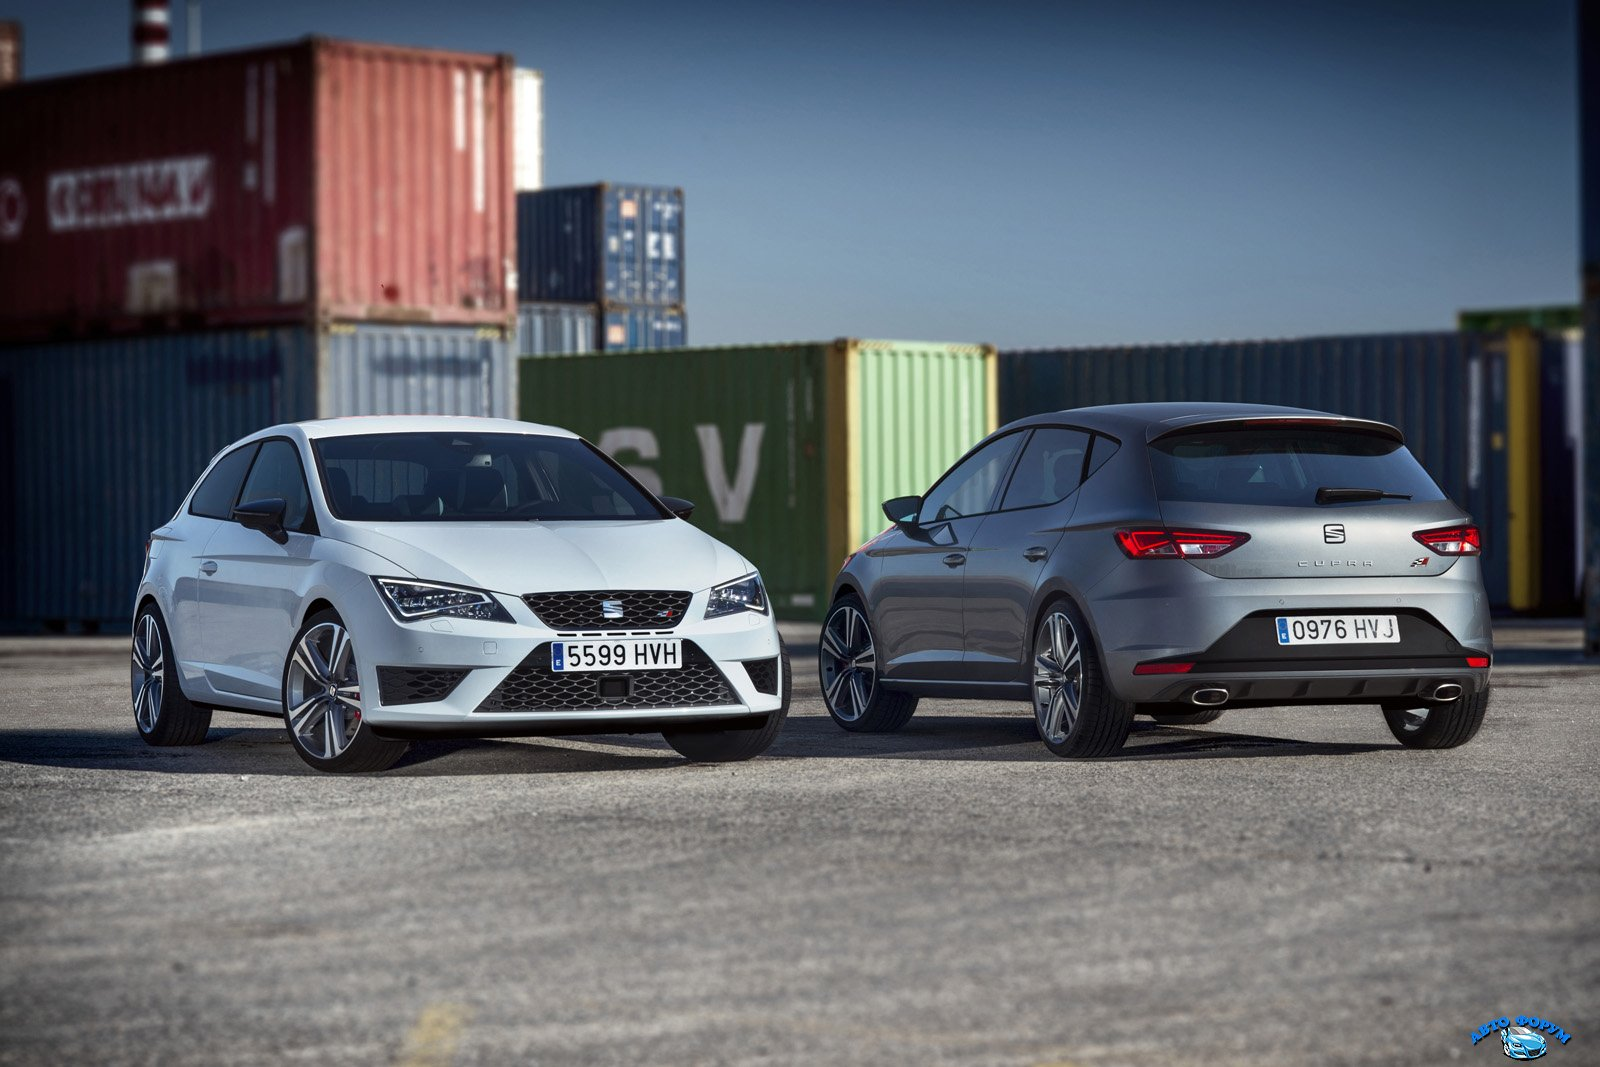 new-photos-and-videos-show-280-hp-seat-leon-cupra-in-detail_3.jpg